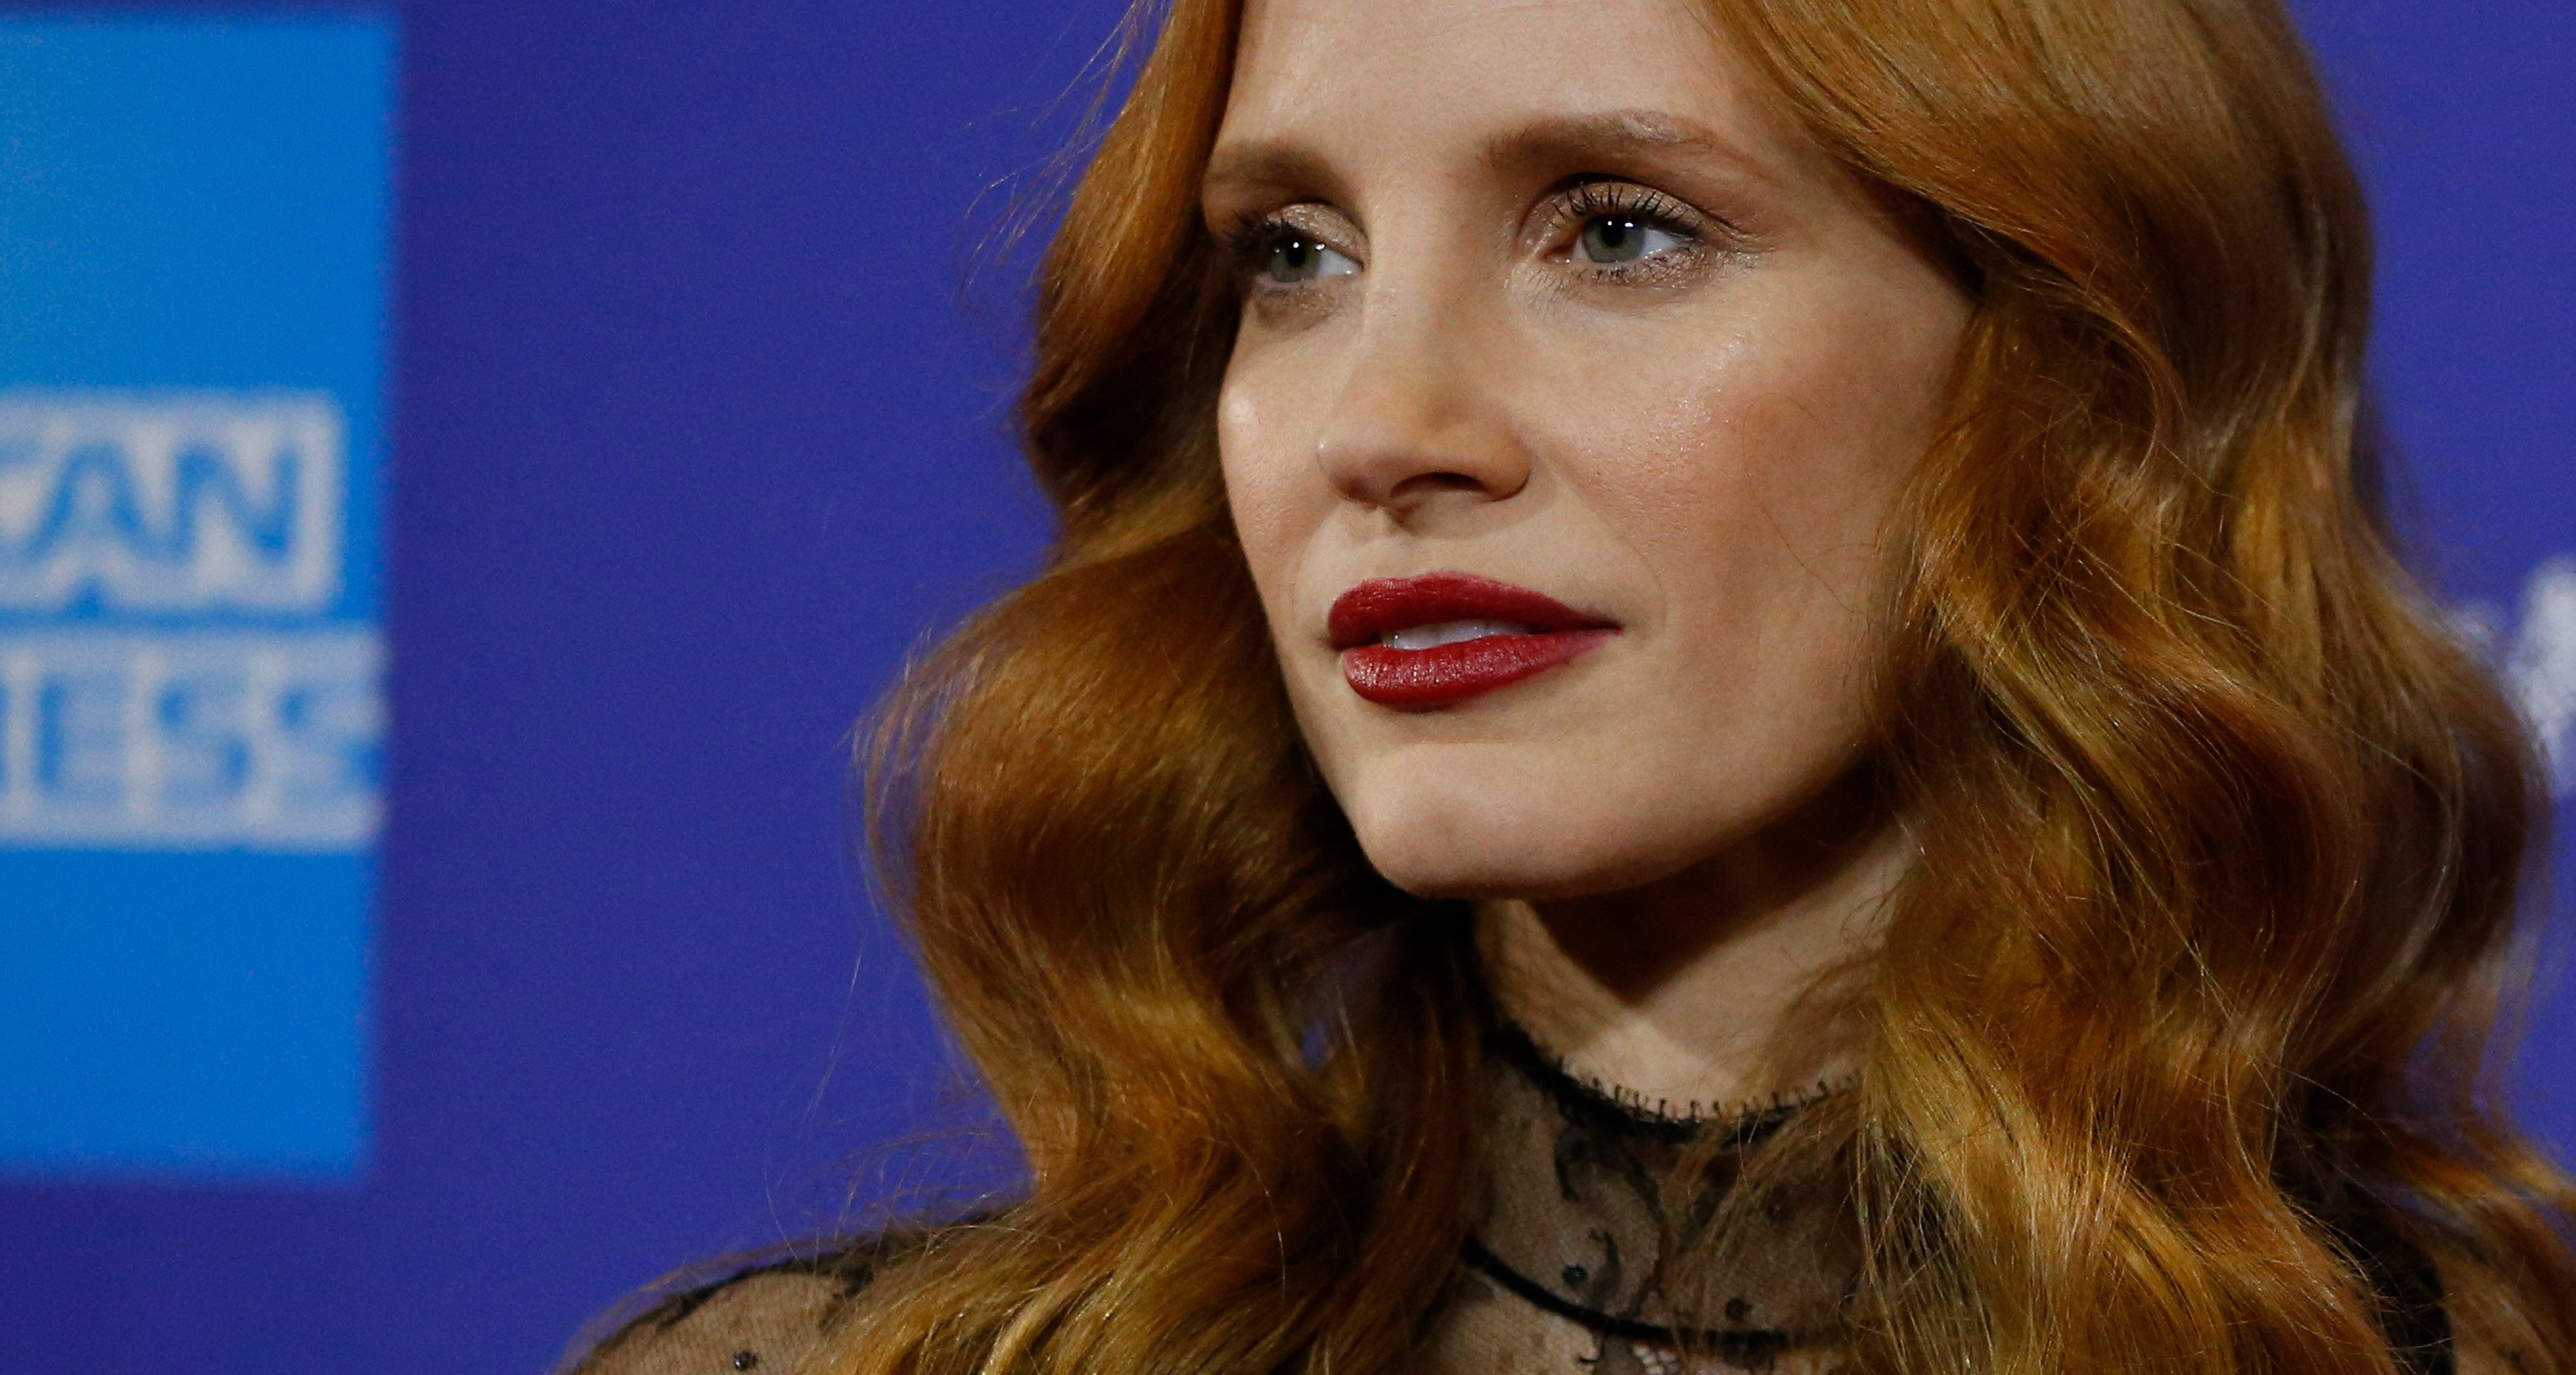 Jessica Chastain at the 29th Annual Palm Springs International Film Festival Awards Gala in Palm Springs, California, on Jan.